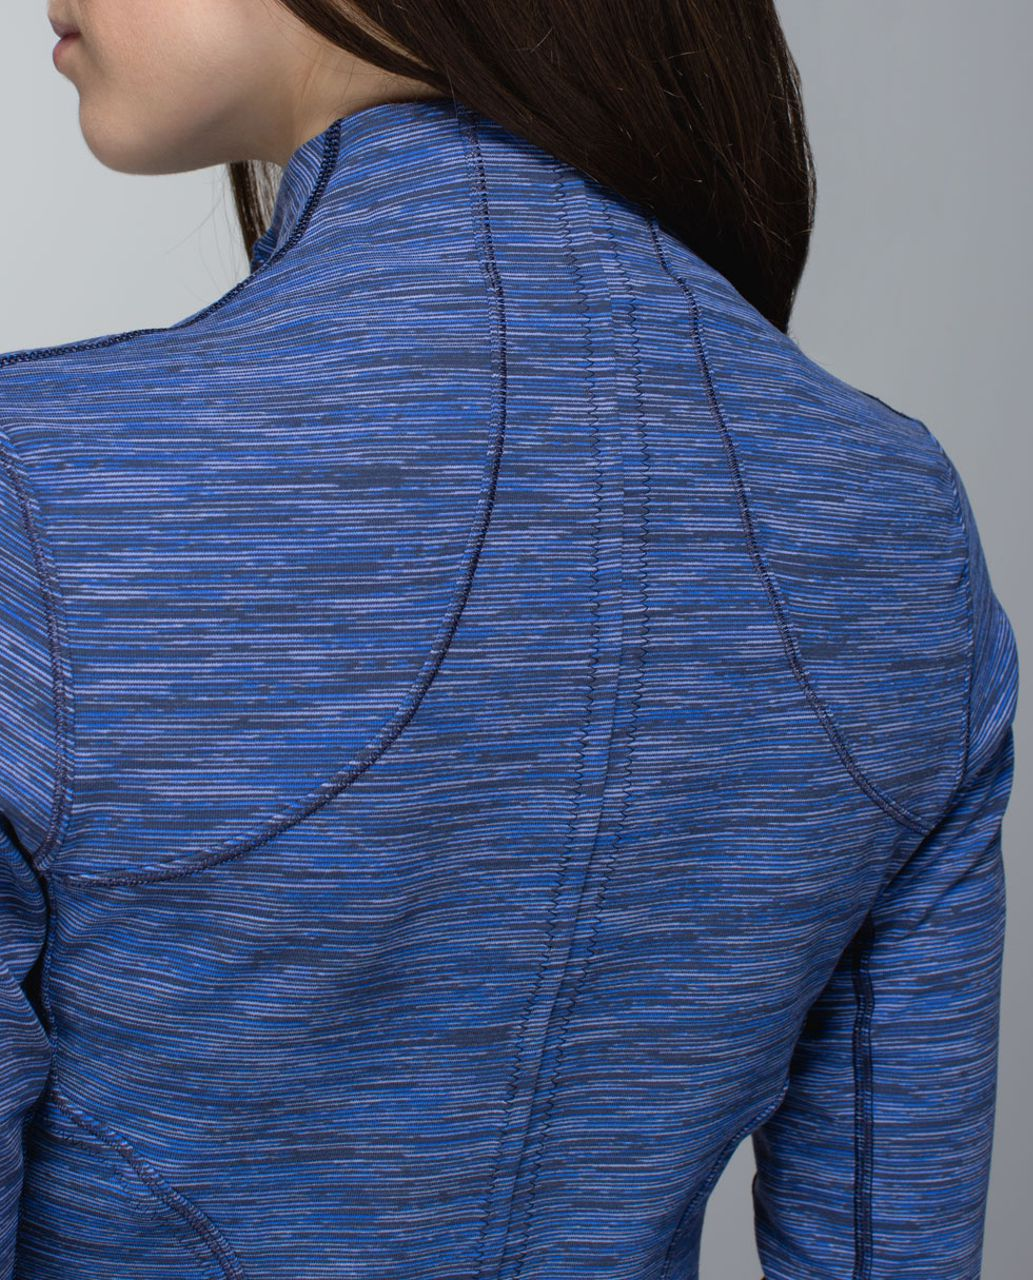 Lululemon Forme Jacket *Cuffins - Wee Are From Space Cadet Blue